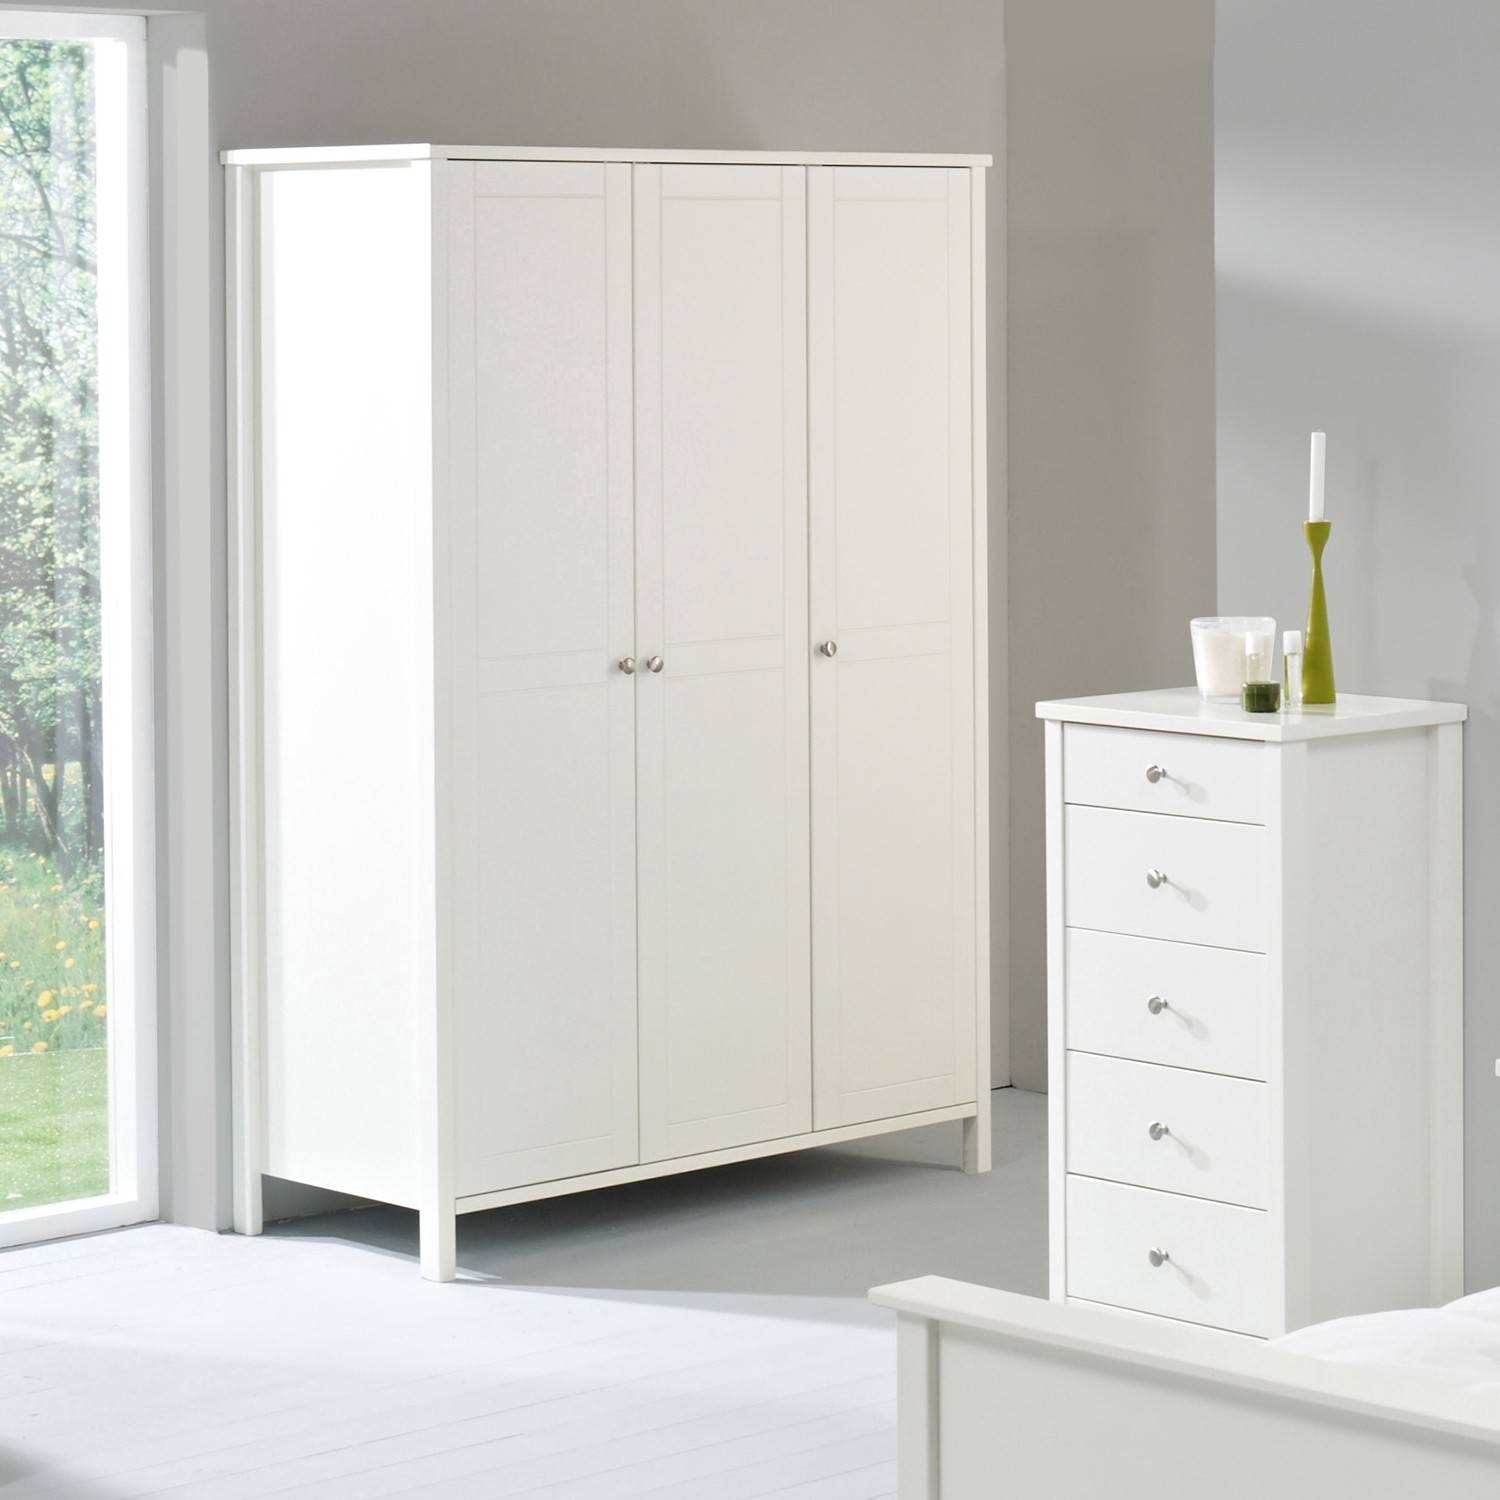 Stockholm White 3 Door Wardrobe | Bedroom Furniture Direct for White 3 Door Wardrobes With Drawers (Image 13 of 15)